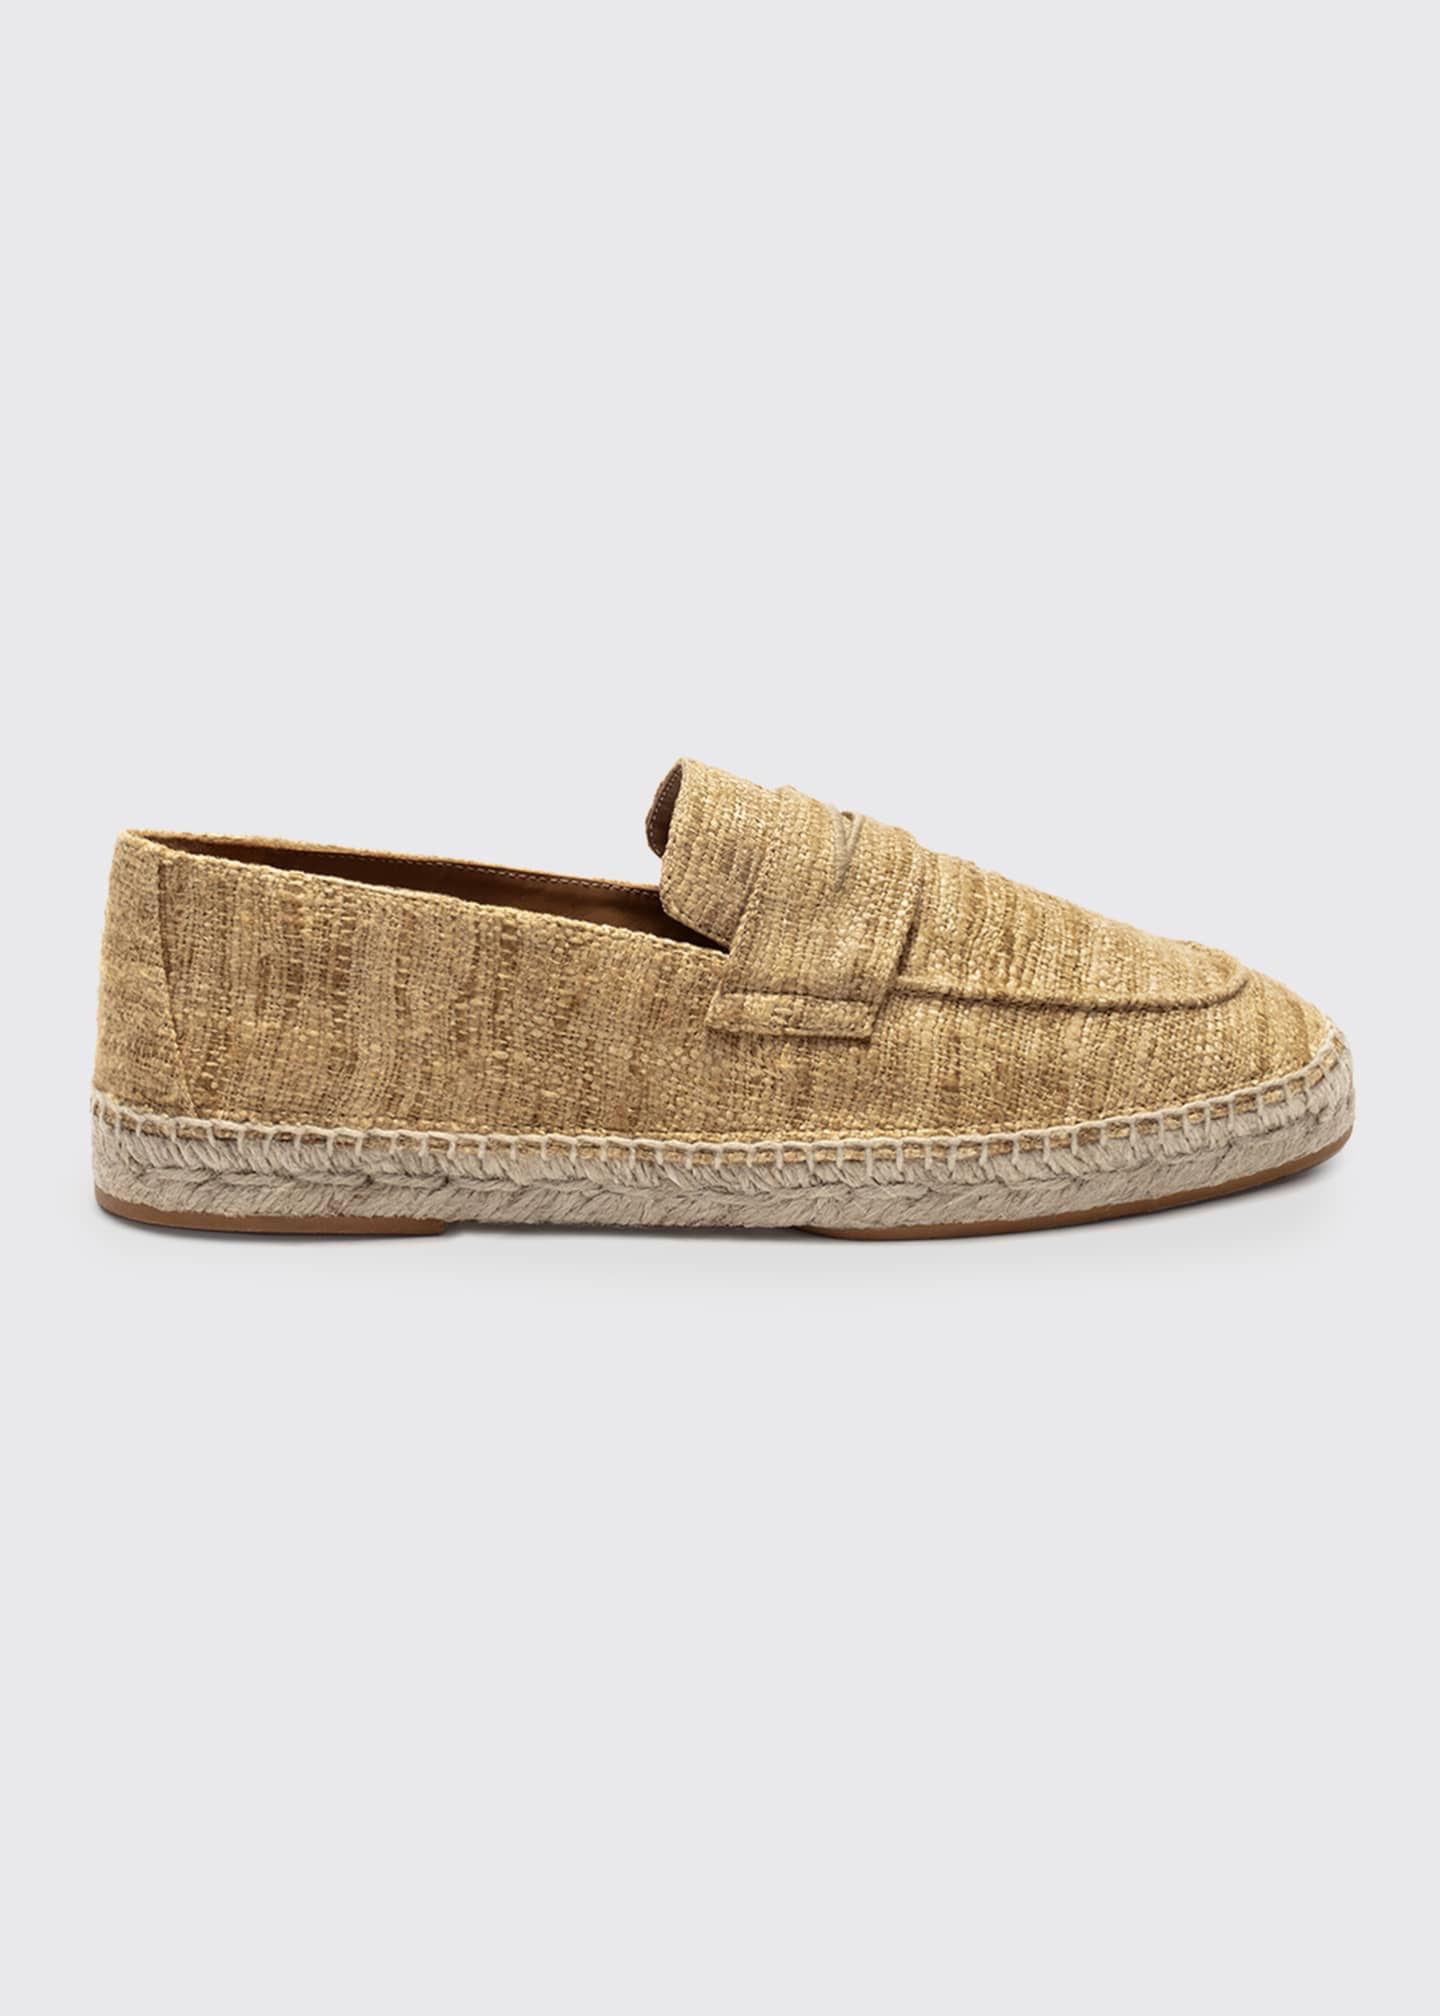 Bougeotte Silk Slip-On Espadrille Loafers